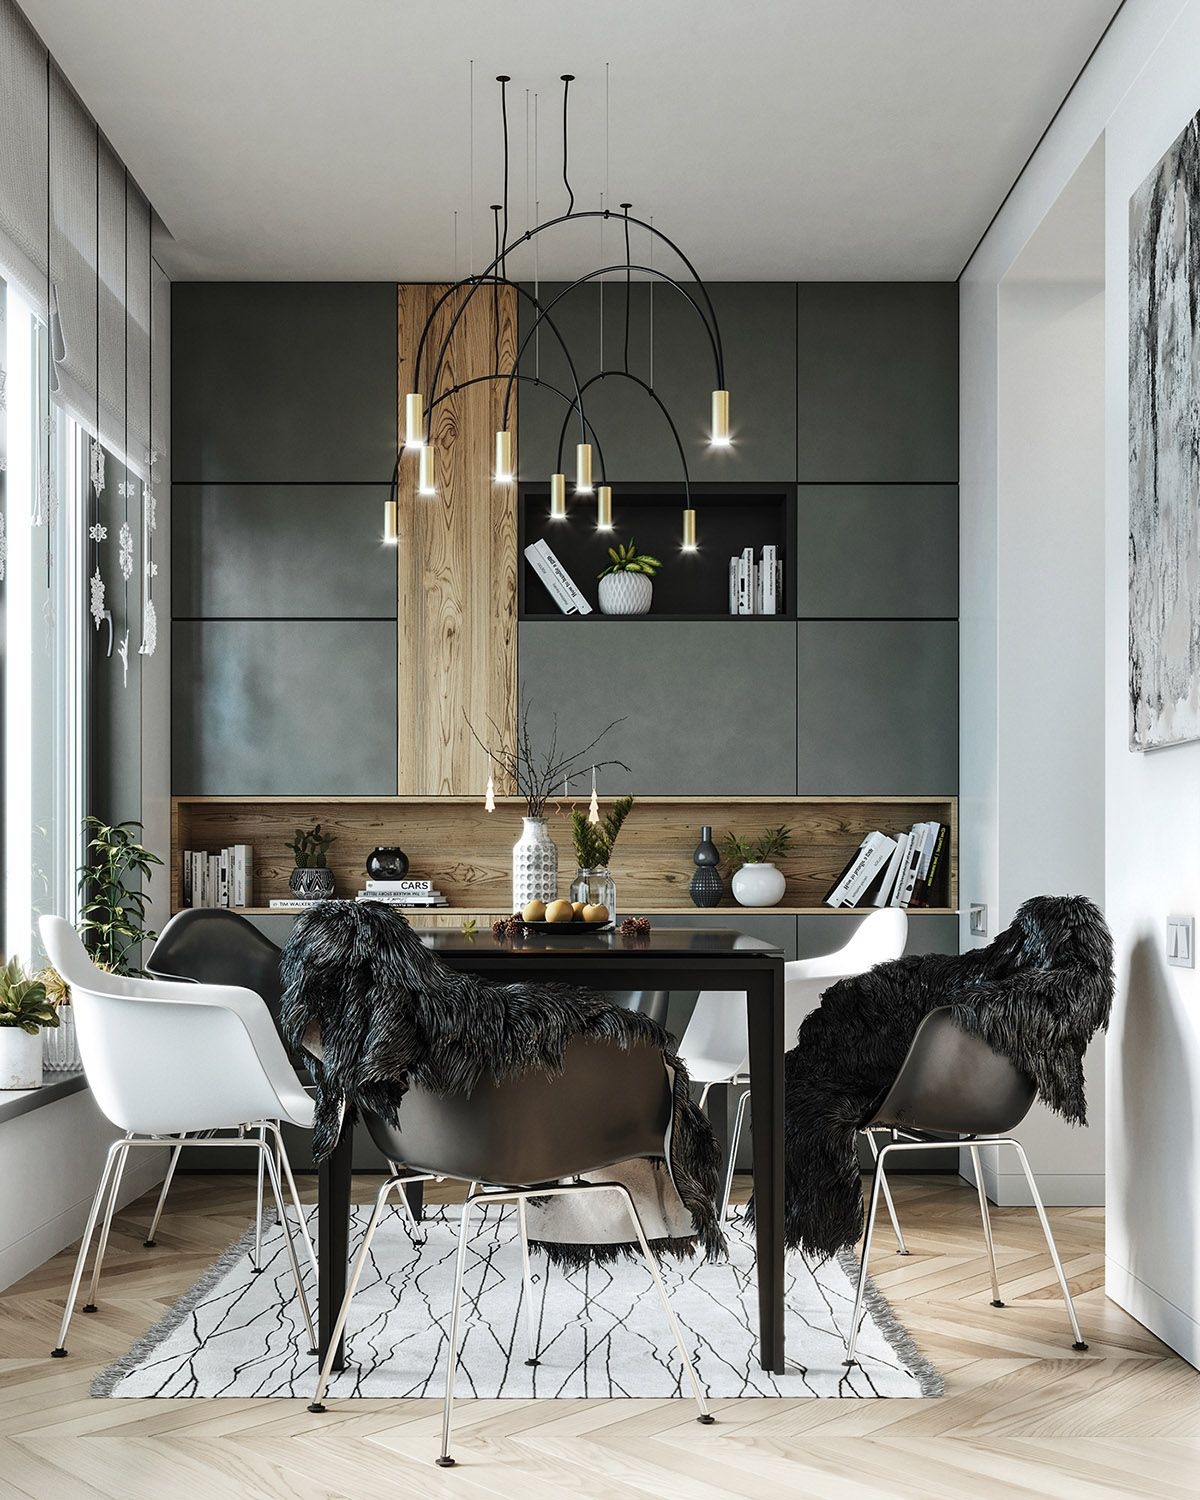 21 Scandinavian Dining Room Designs Decorating Ideas: 5 Fresh & Funky Scandinavian Style Home Interiors